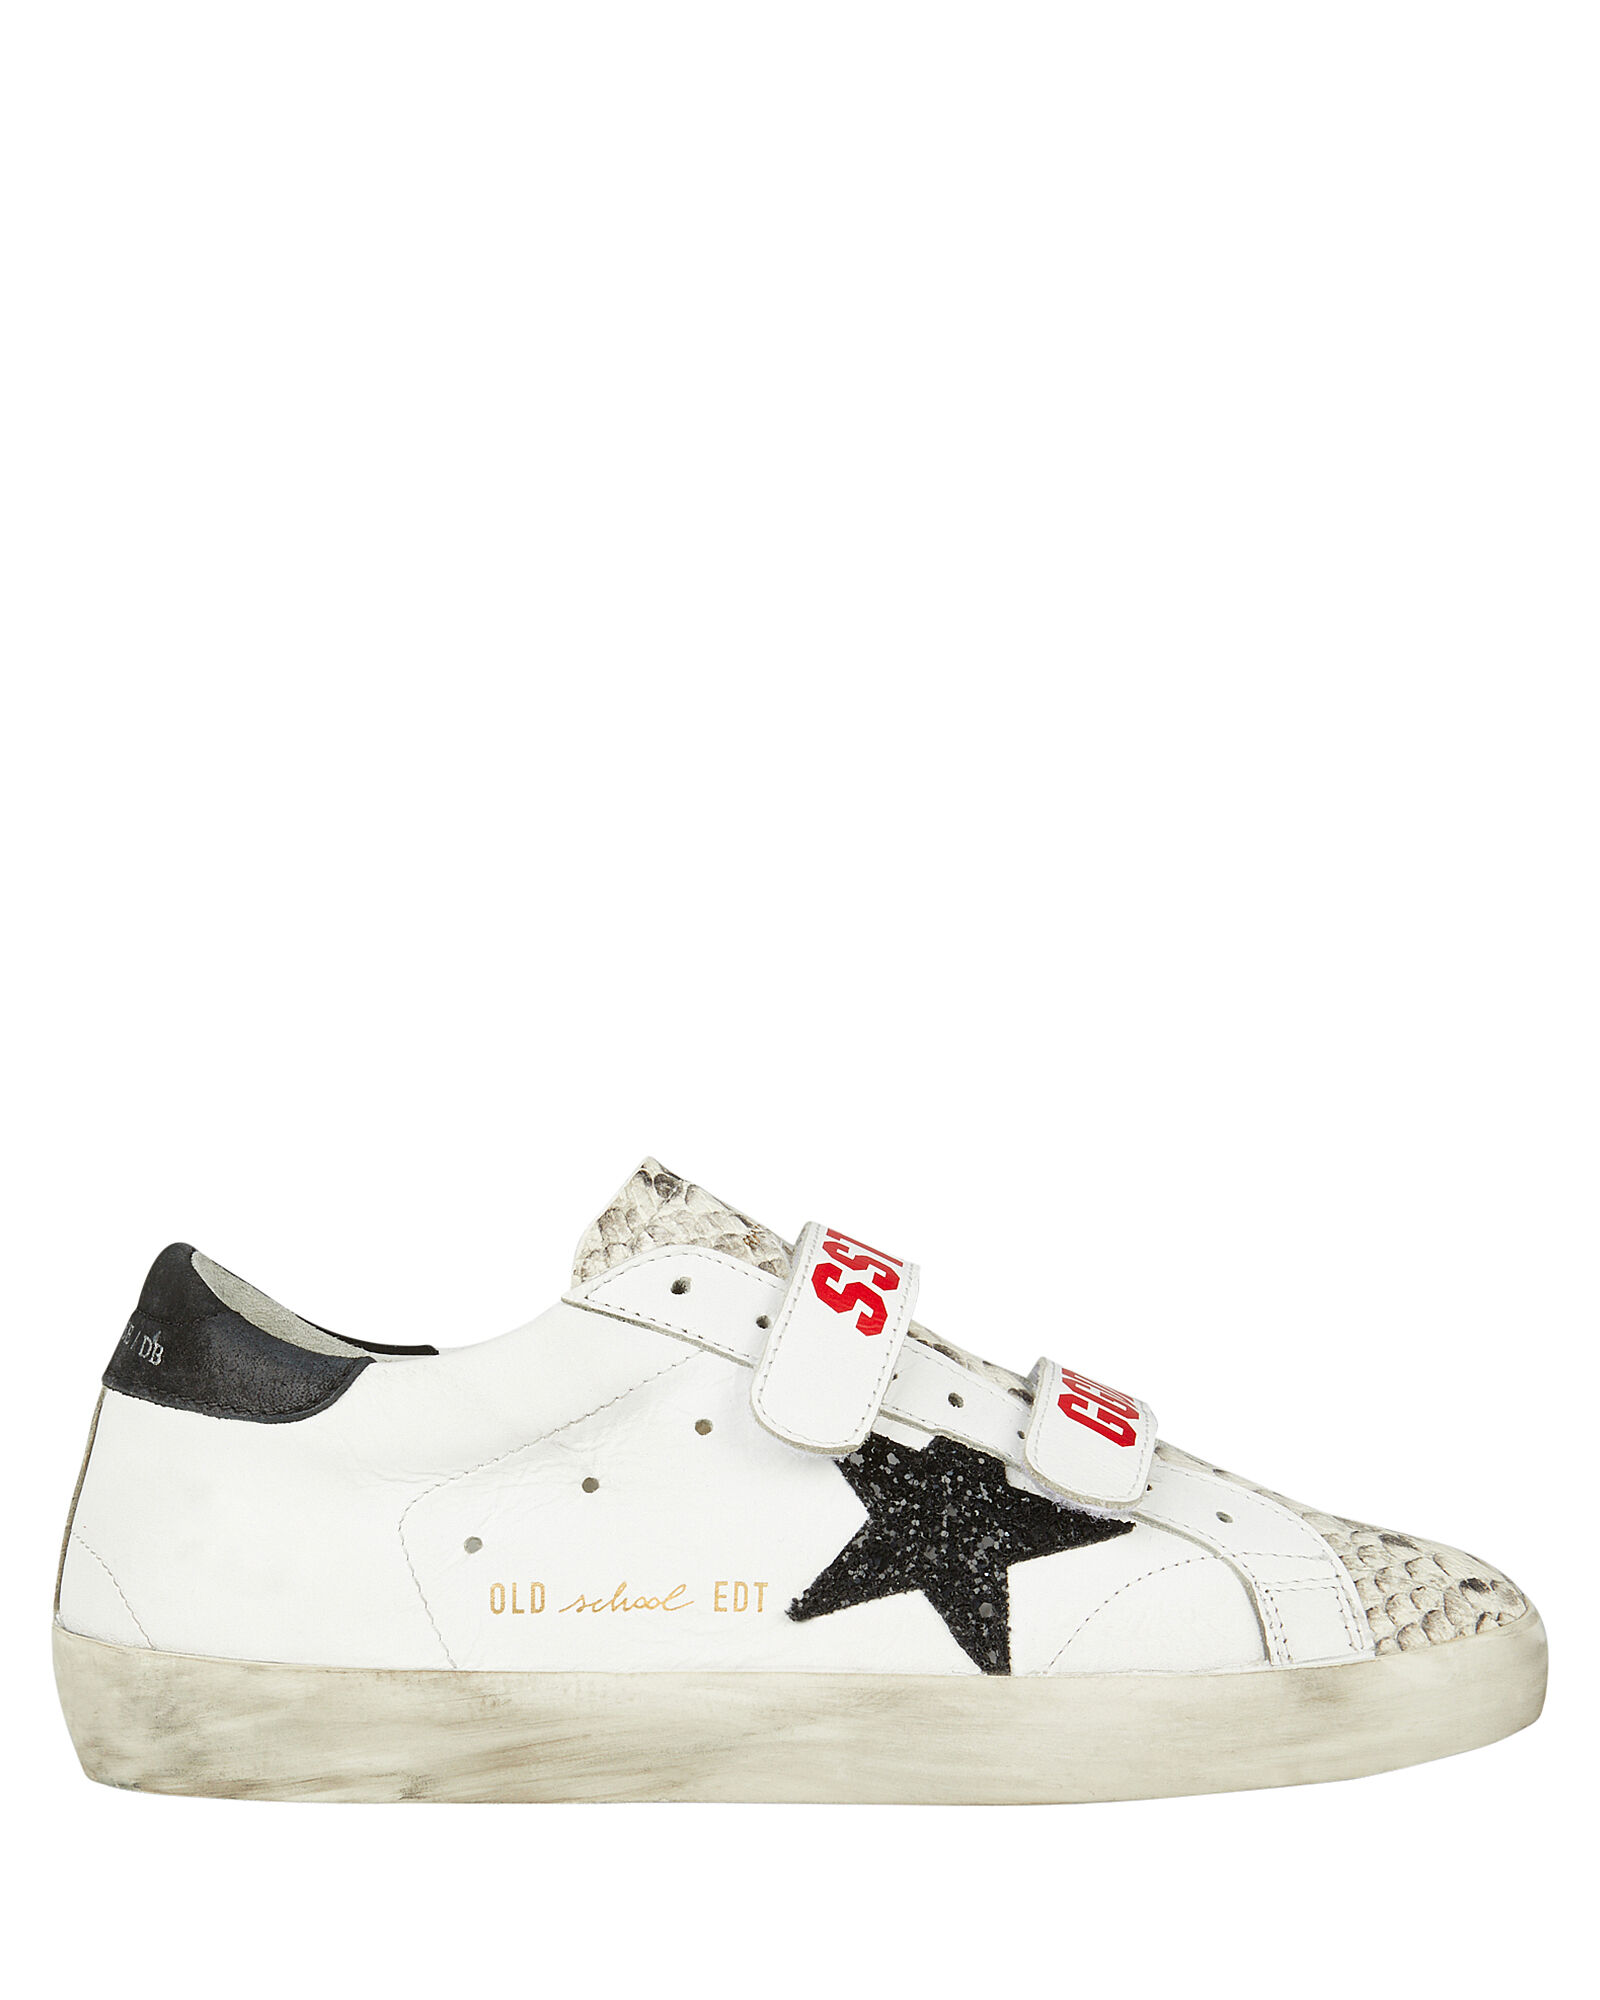 Old School Velcro Leather Sneakers, BLK/WHT, hi-res